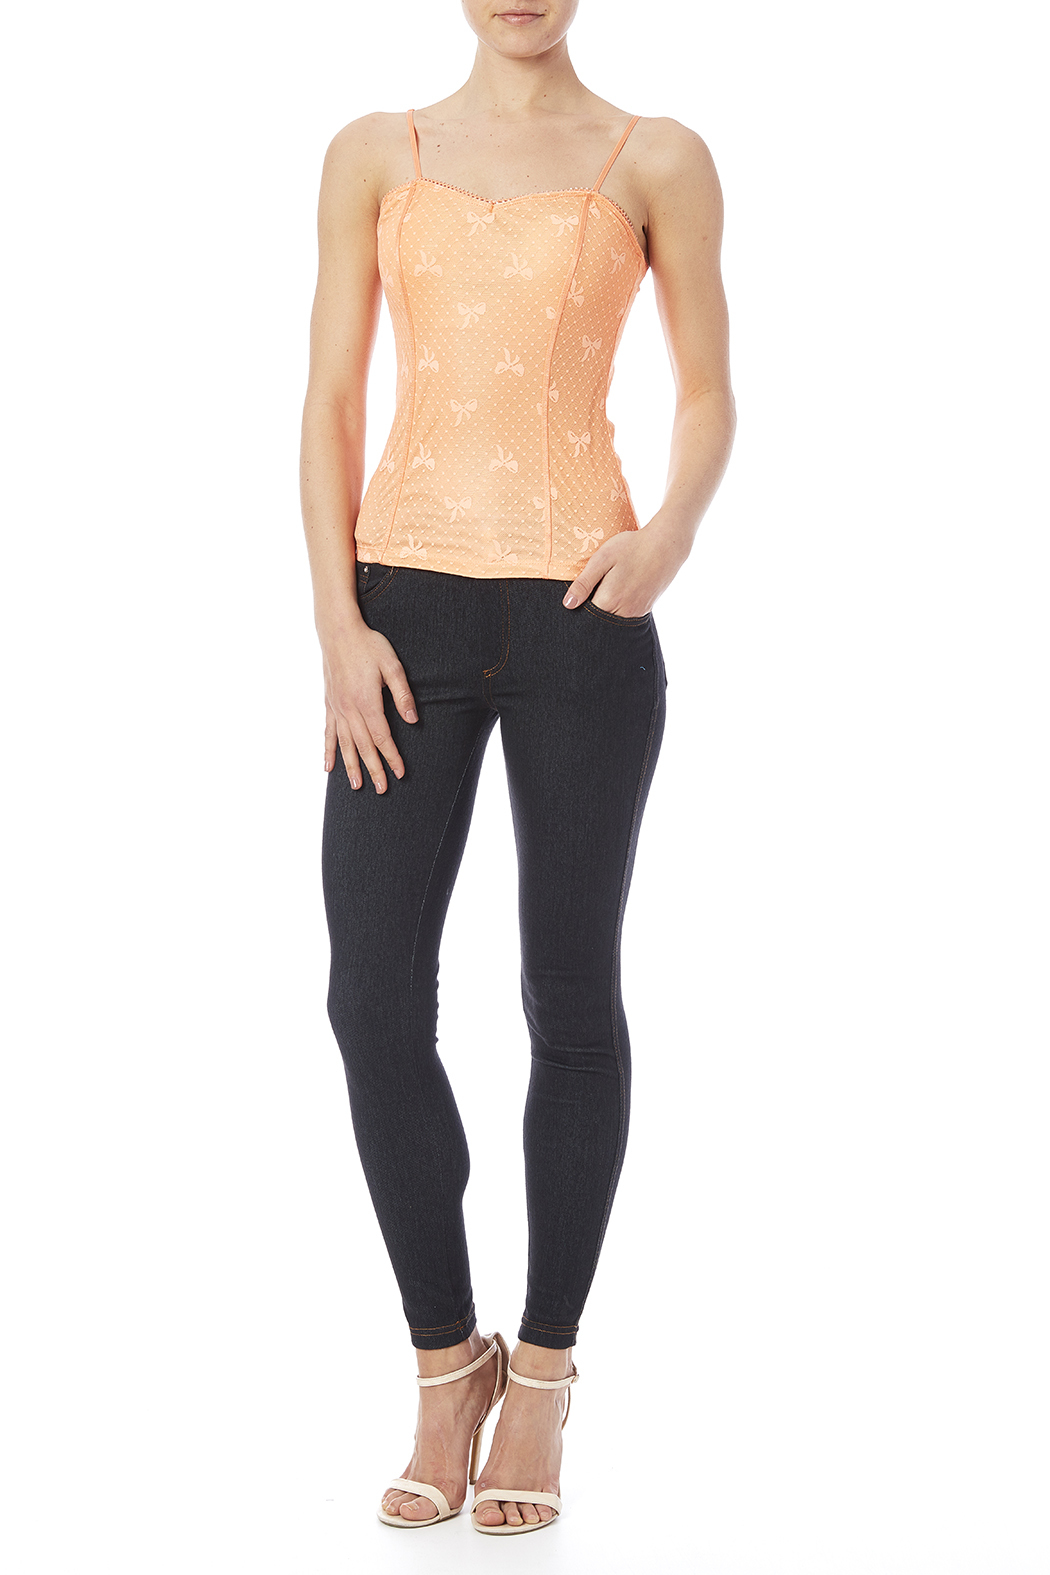 Daisy's Fashions Crystal Accented Jeggings - Front Full Image